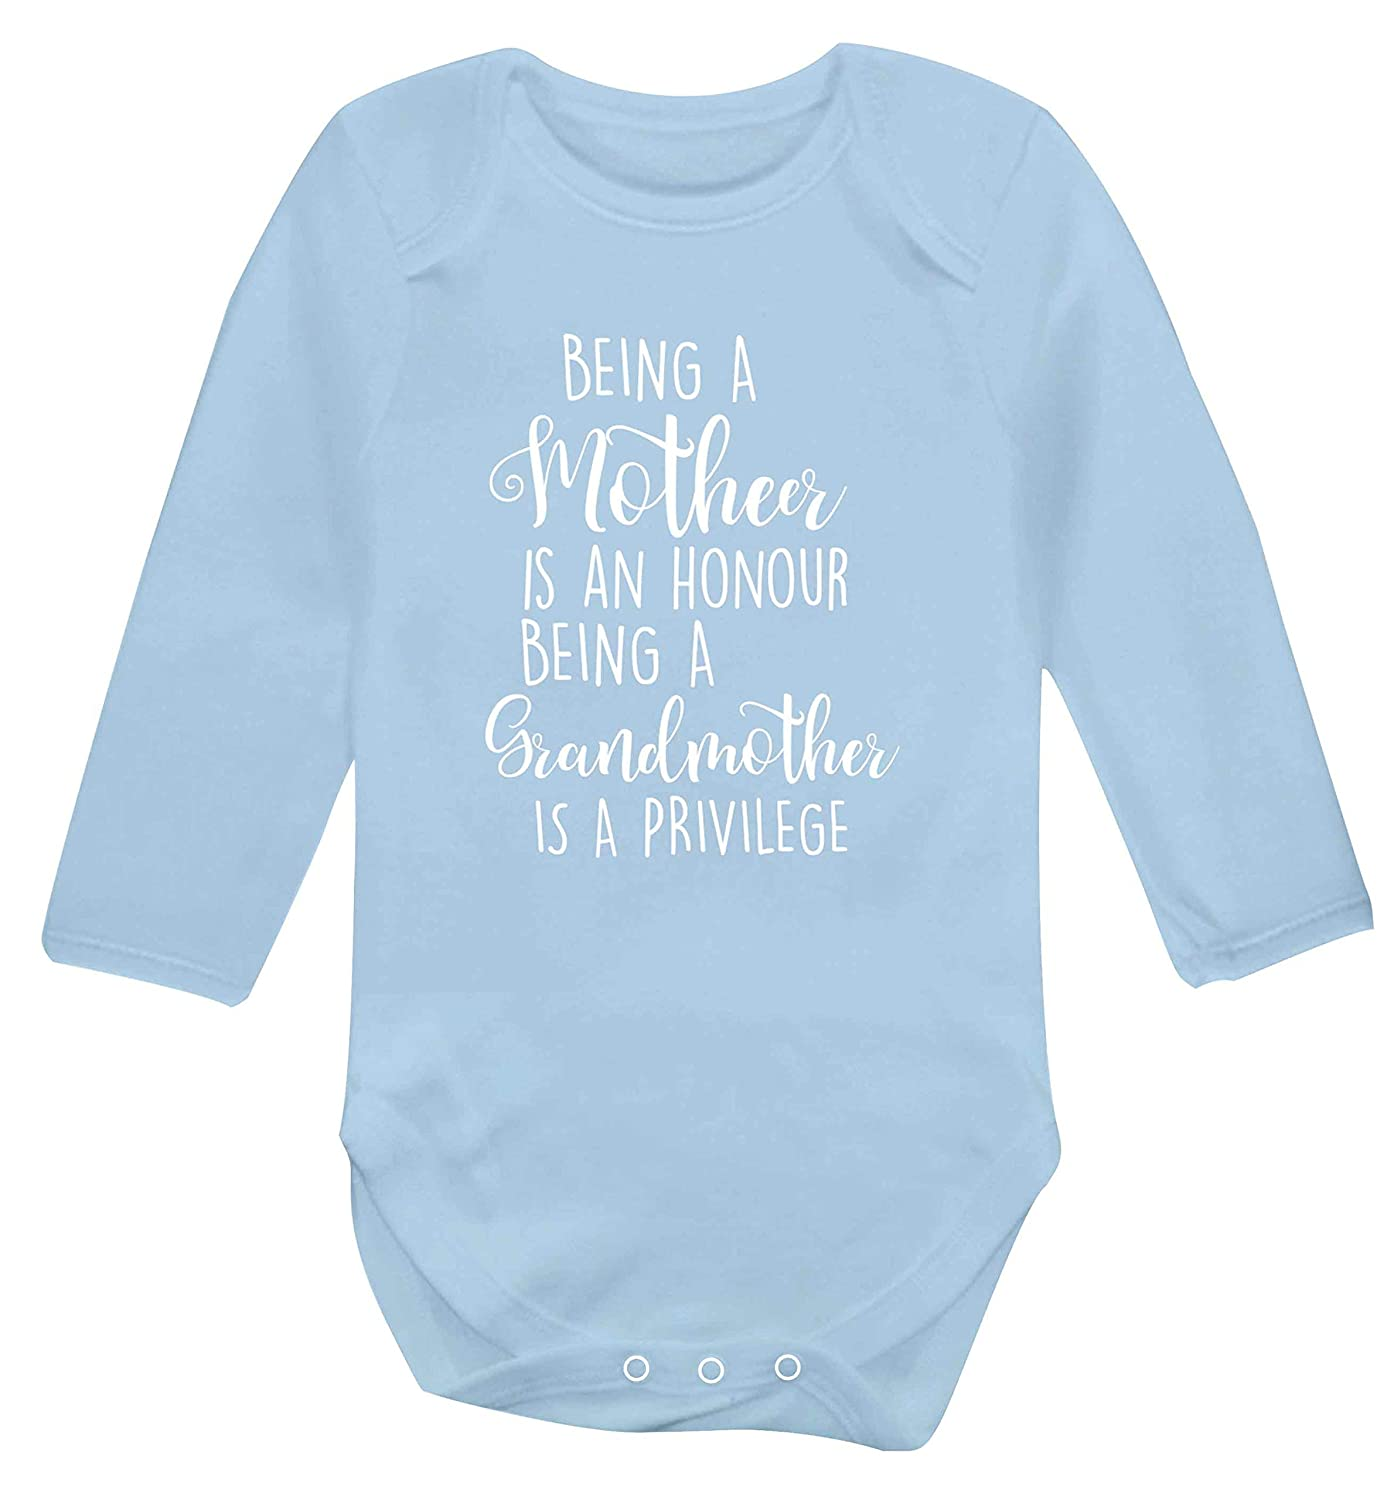 Flox Creative Long Sleeved Baby Vest Mother Honour Grandmother Privilege